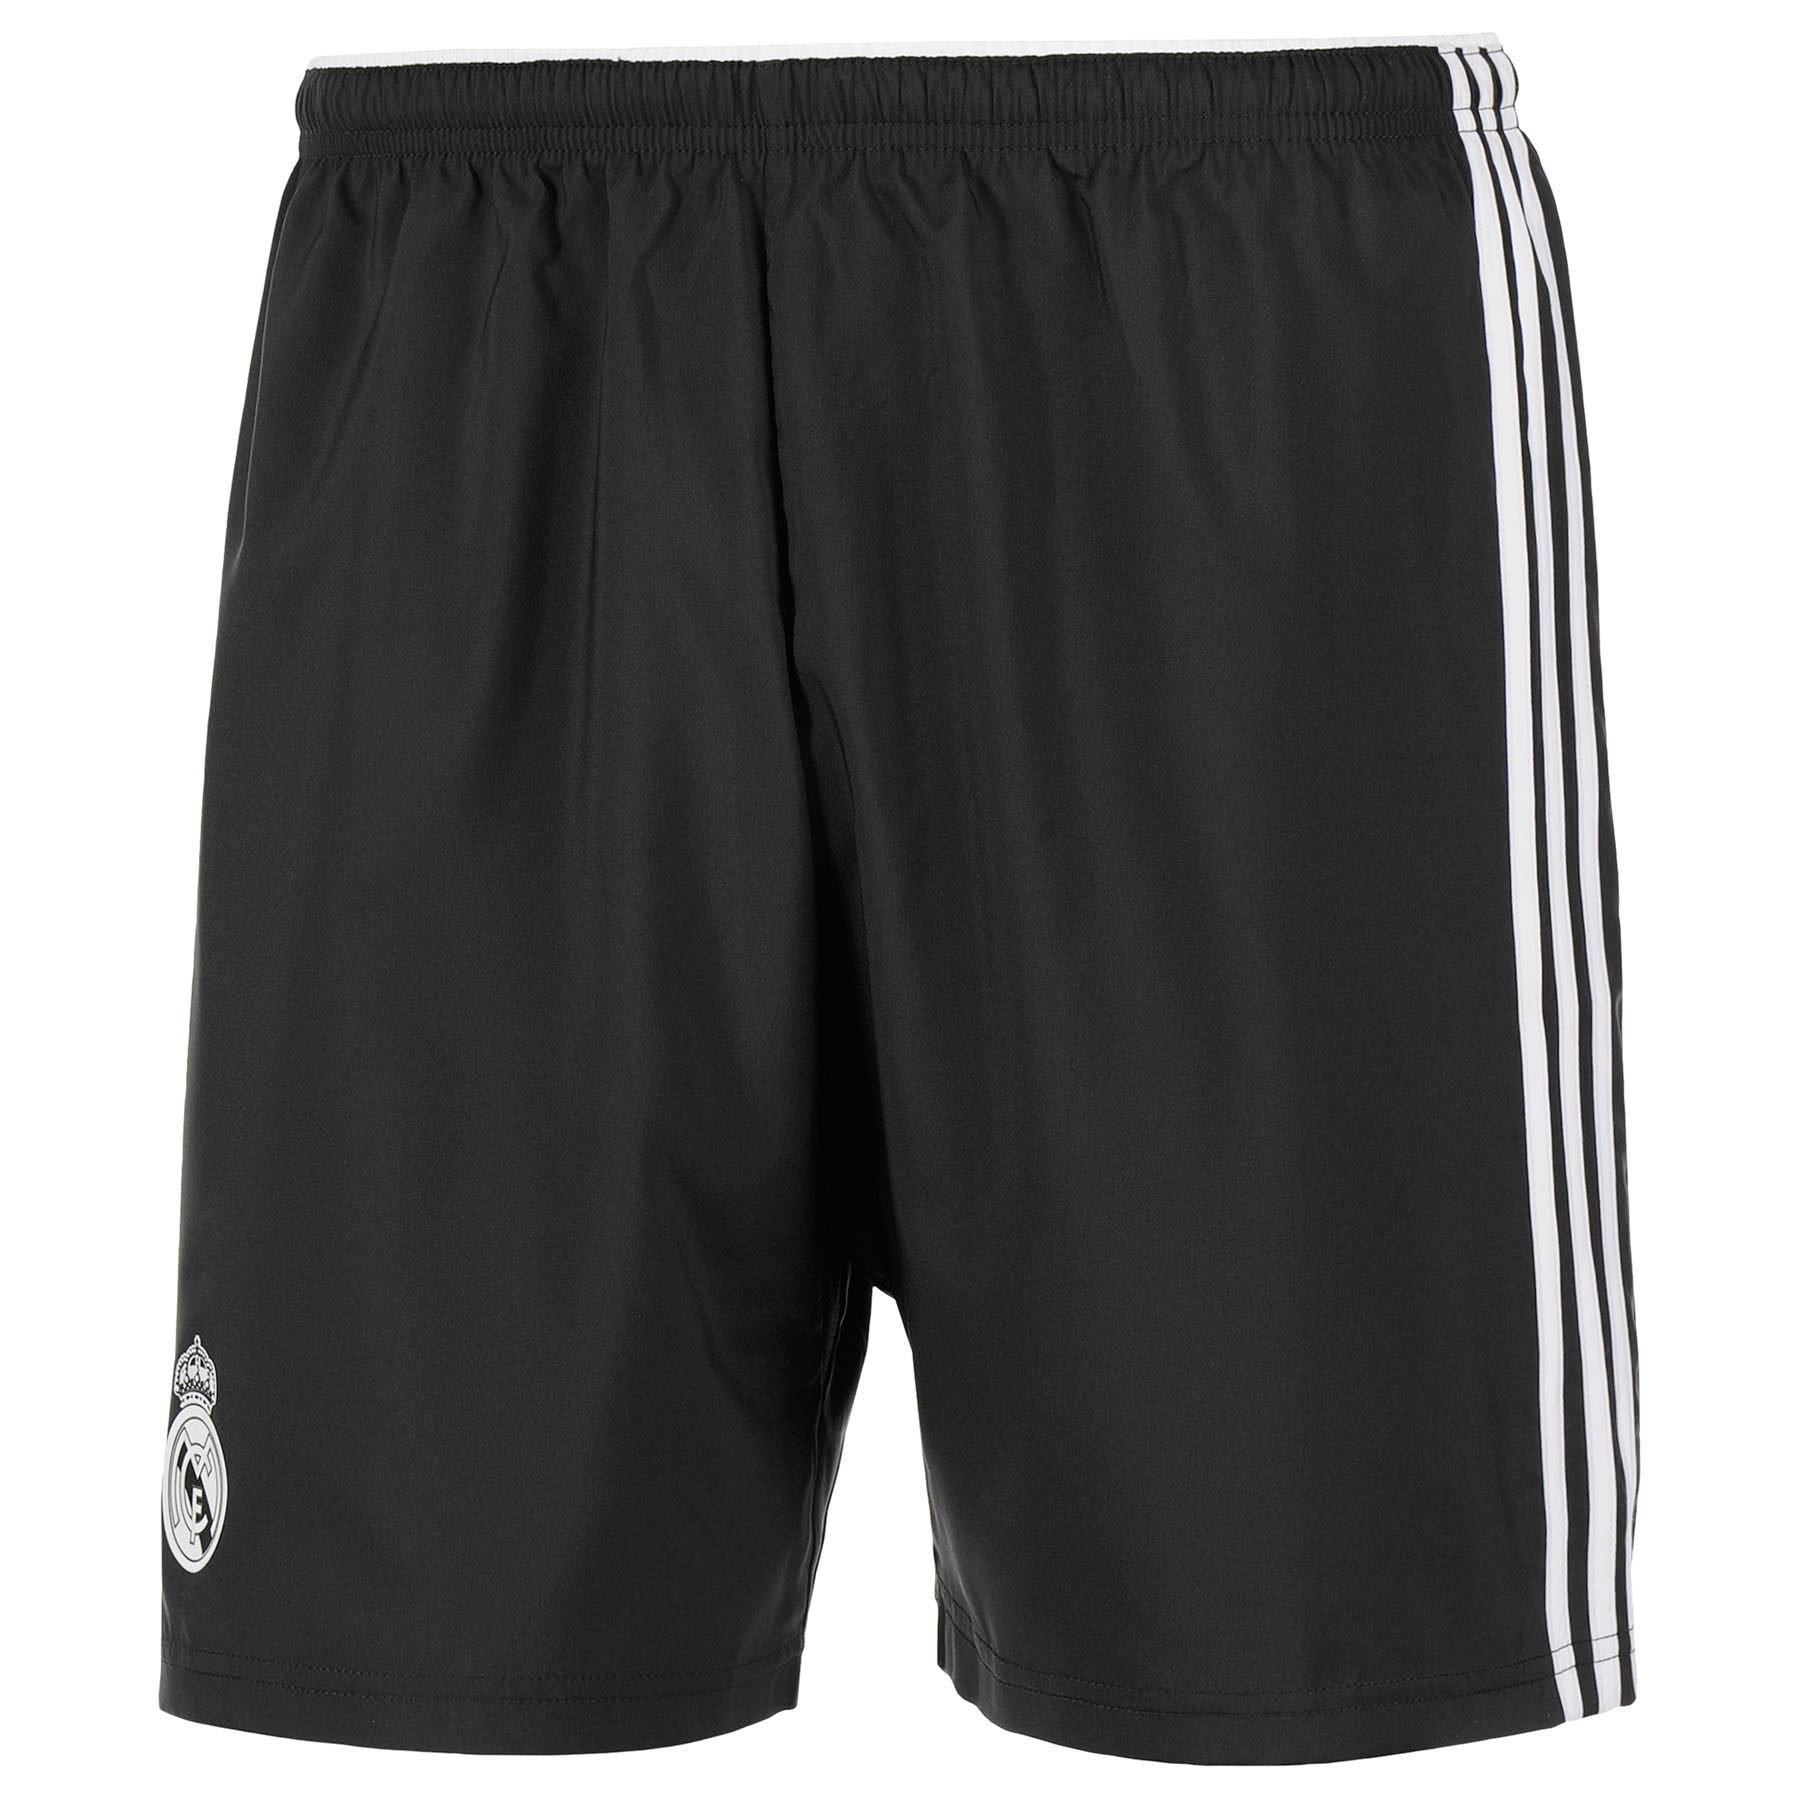 Real Madrid Third Shorts 2014/15 - Kids